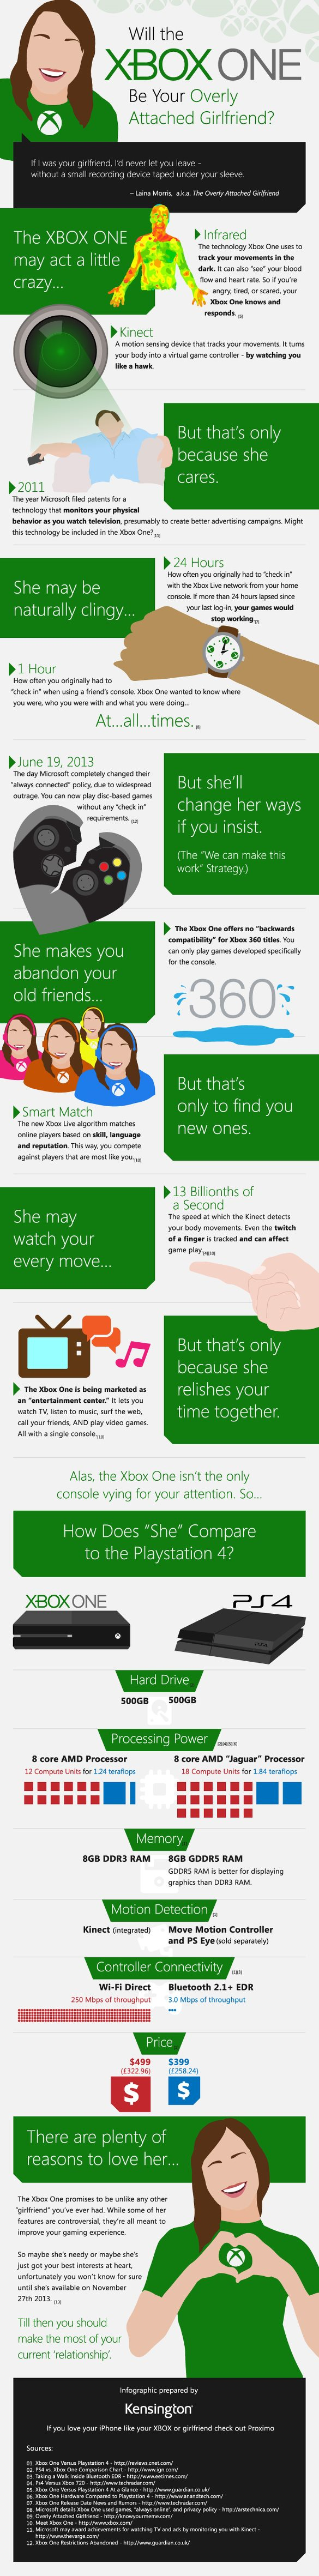 XBOX One Overview-Infographic